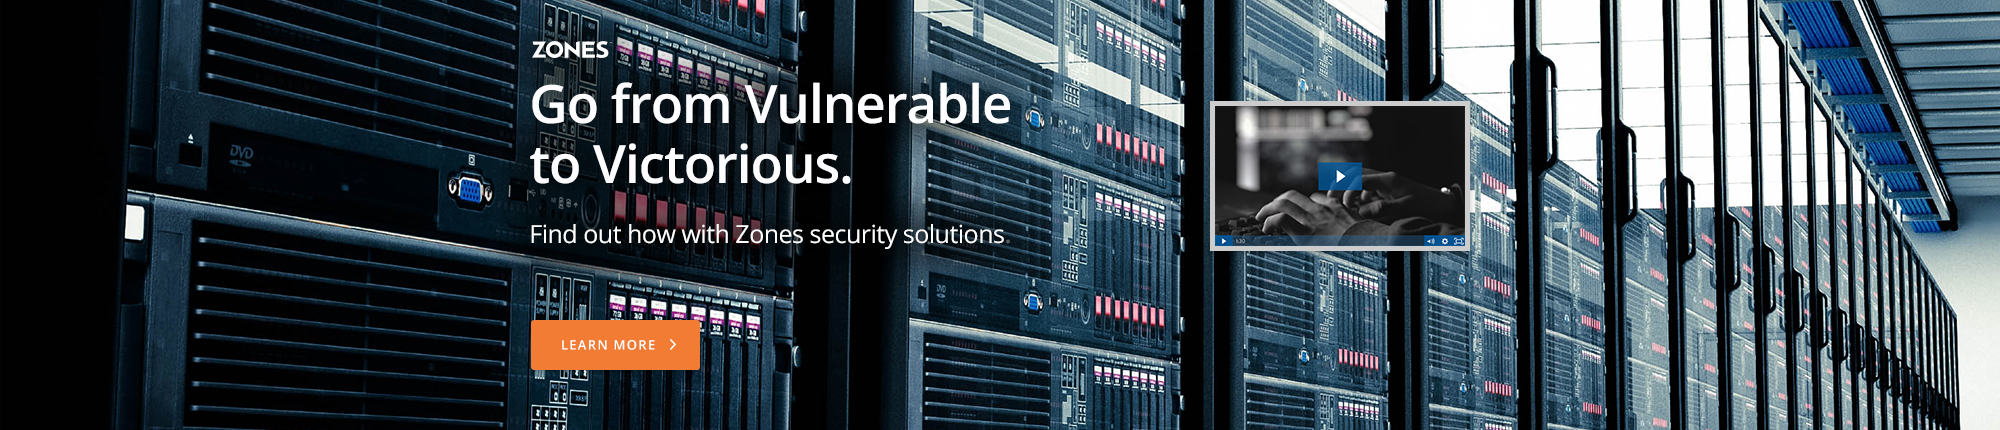 Go from Vulnerable to Victorious. Find out how with Zones security solutions.